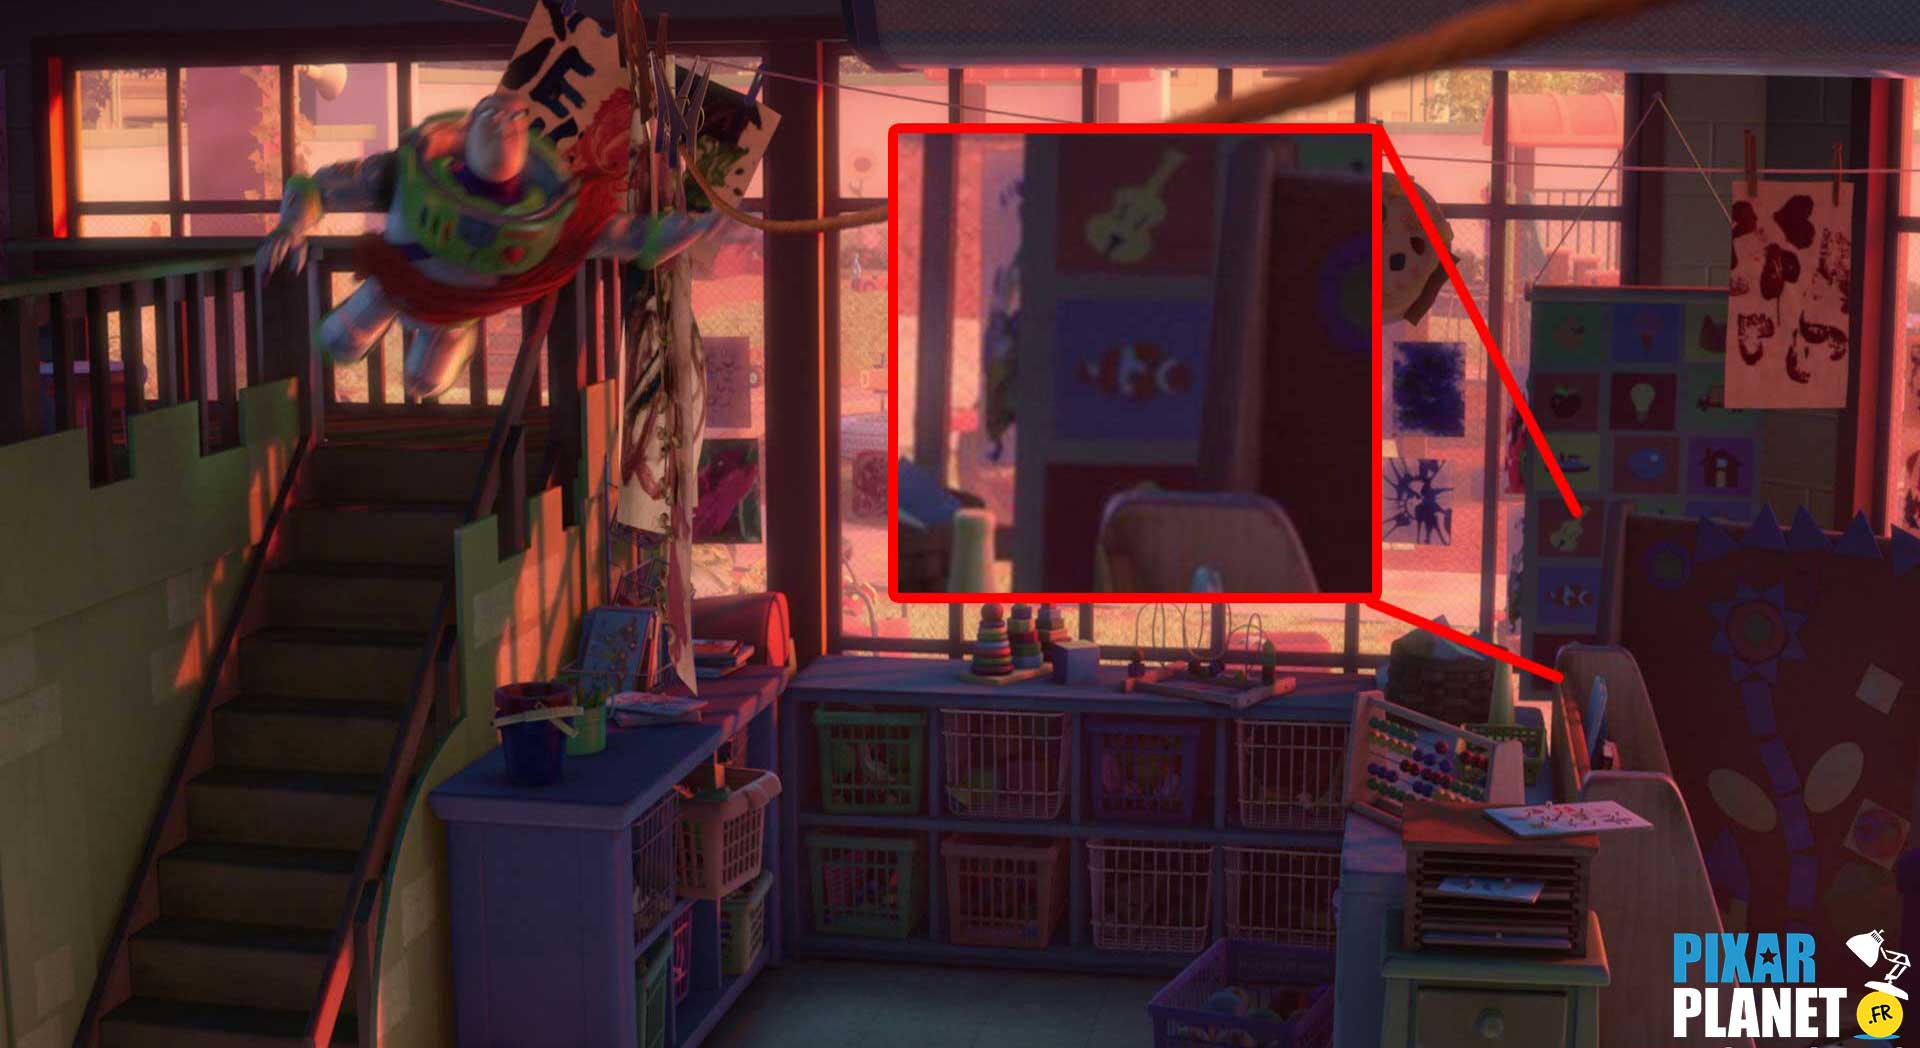 Easter Eggs From Toy Story 3 Pixar Planet Fr